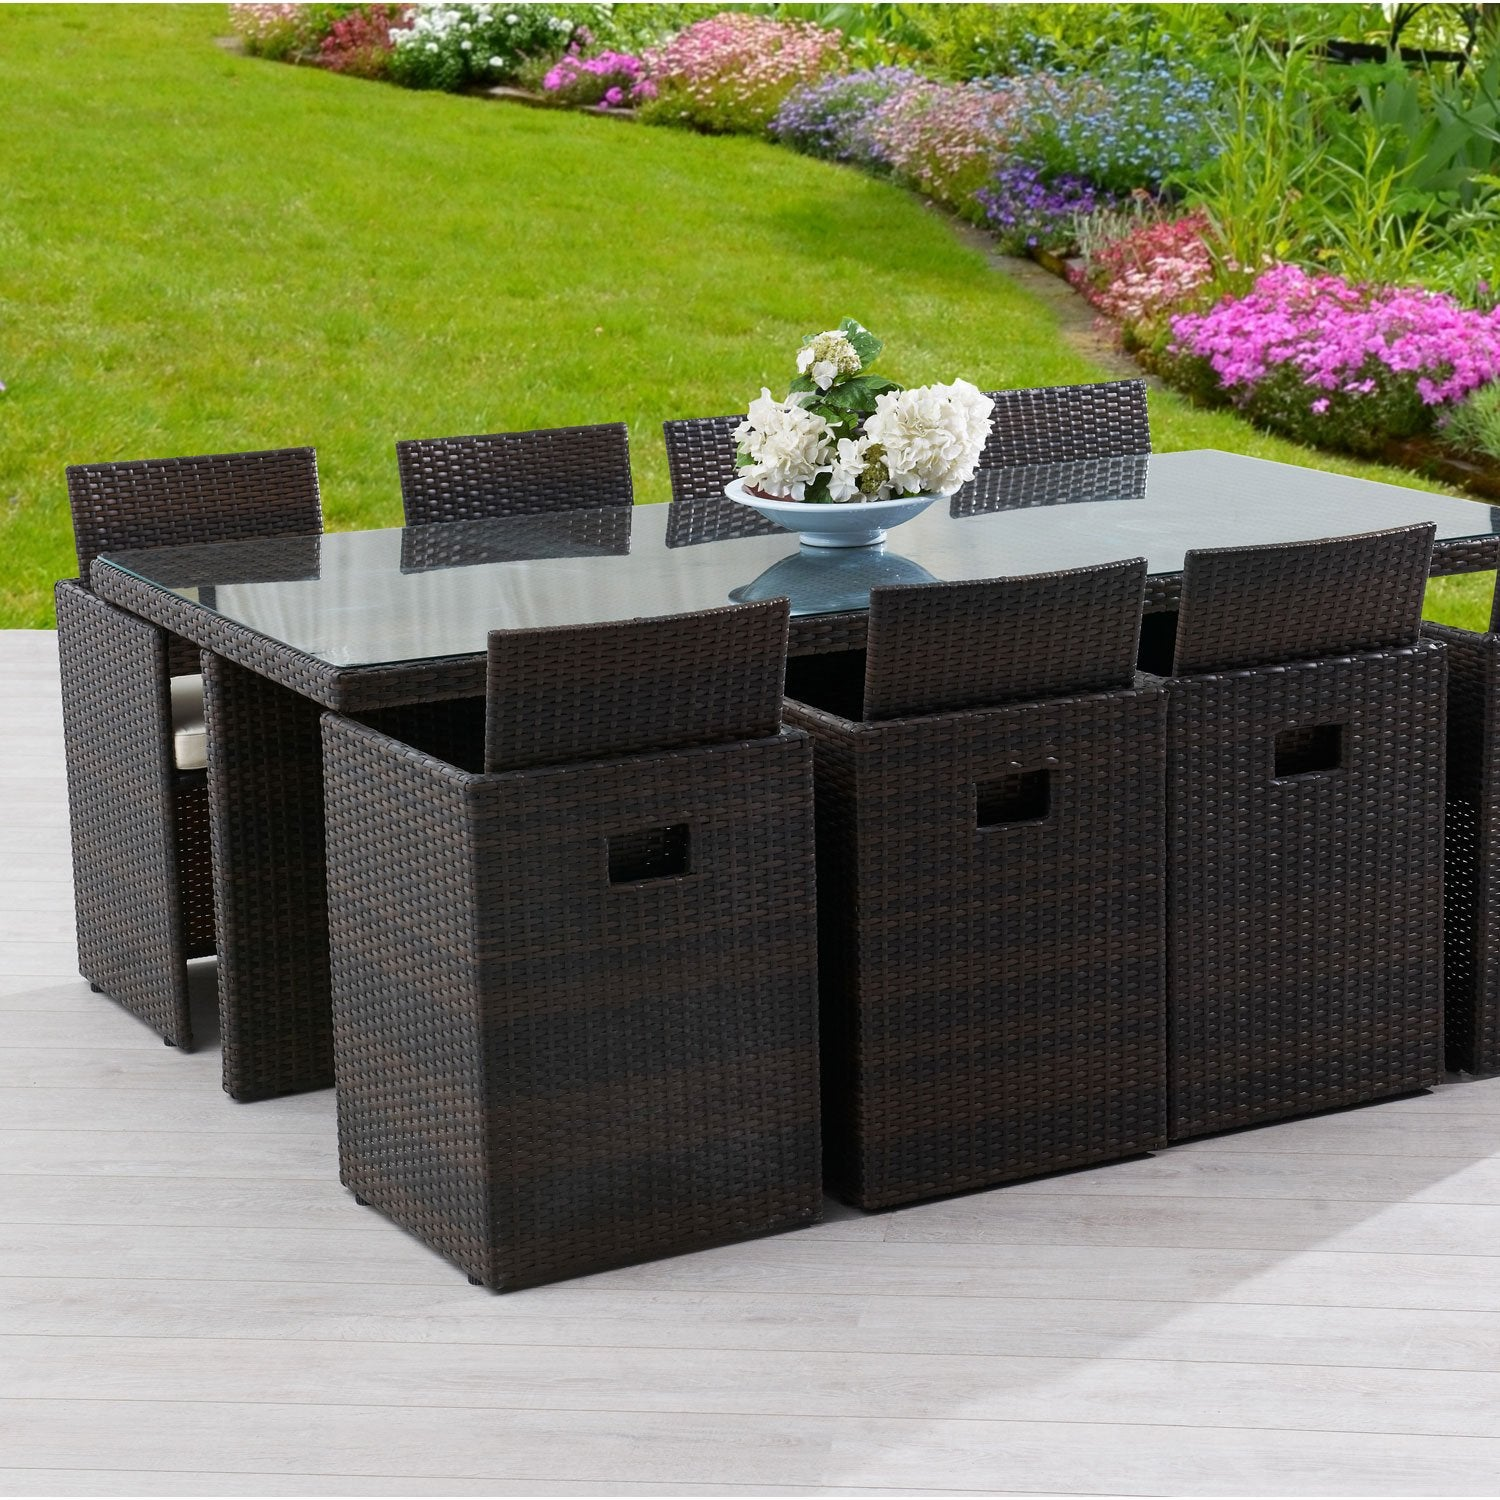 salon de jardin encastrable r sine tress e marron 1 table 8 fauteuils ler. Black Bedroom Furniture Sets. Home Design Ideas